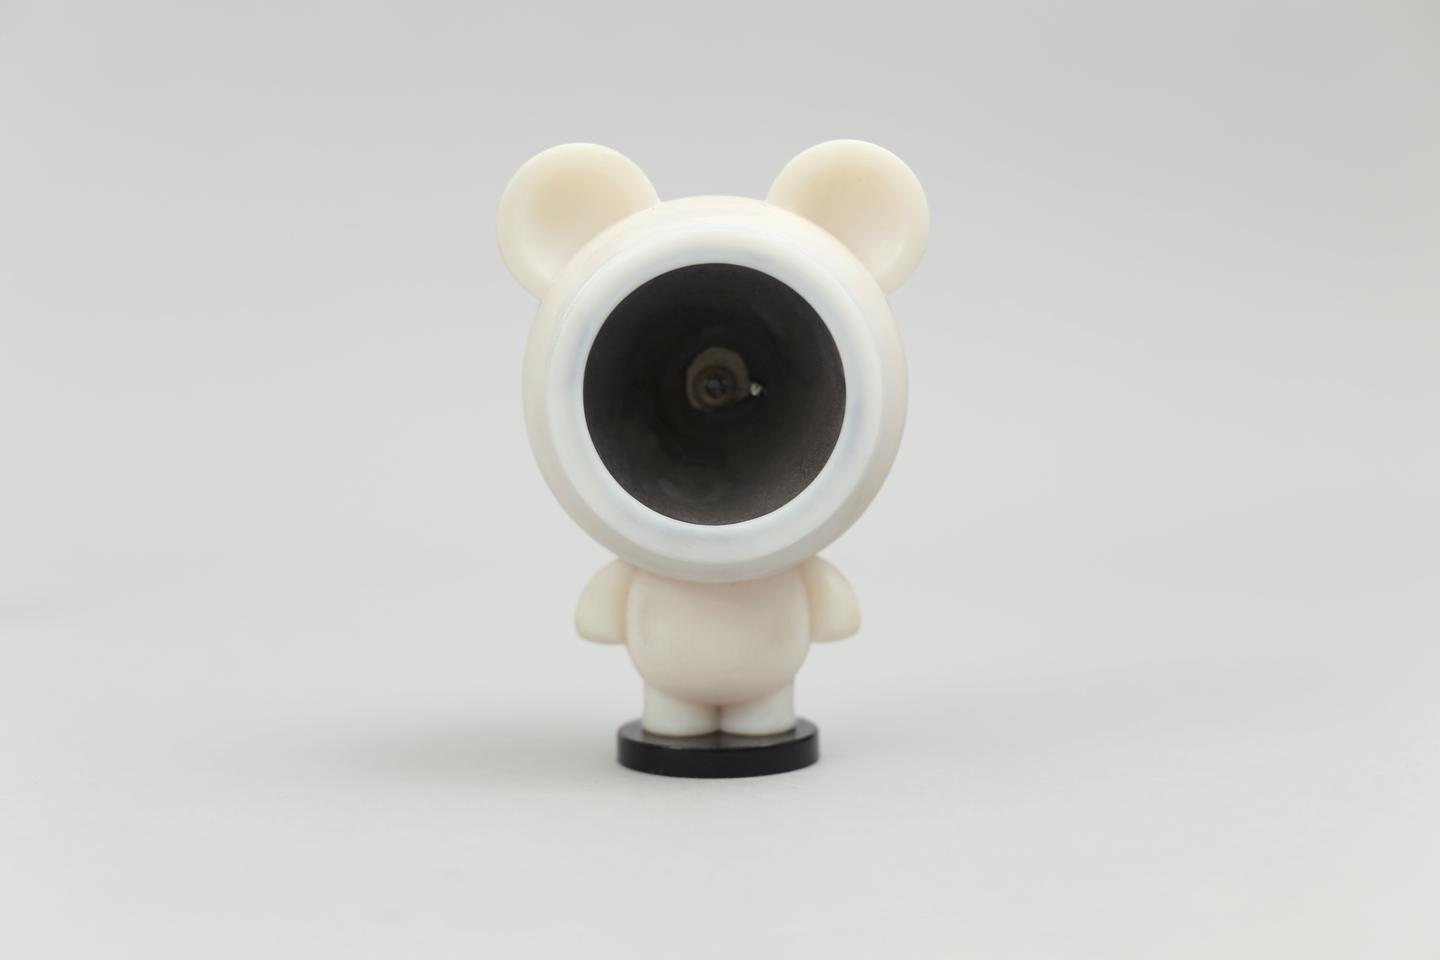 A 3D-printed speaker integrated into a teddy bear (Photo: Disney Research)